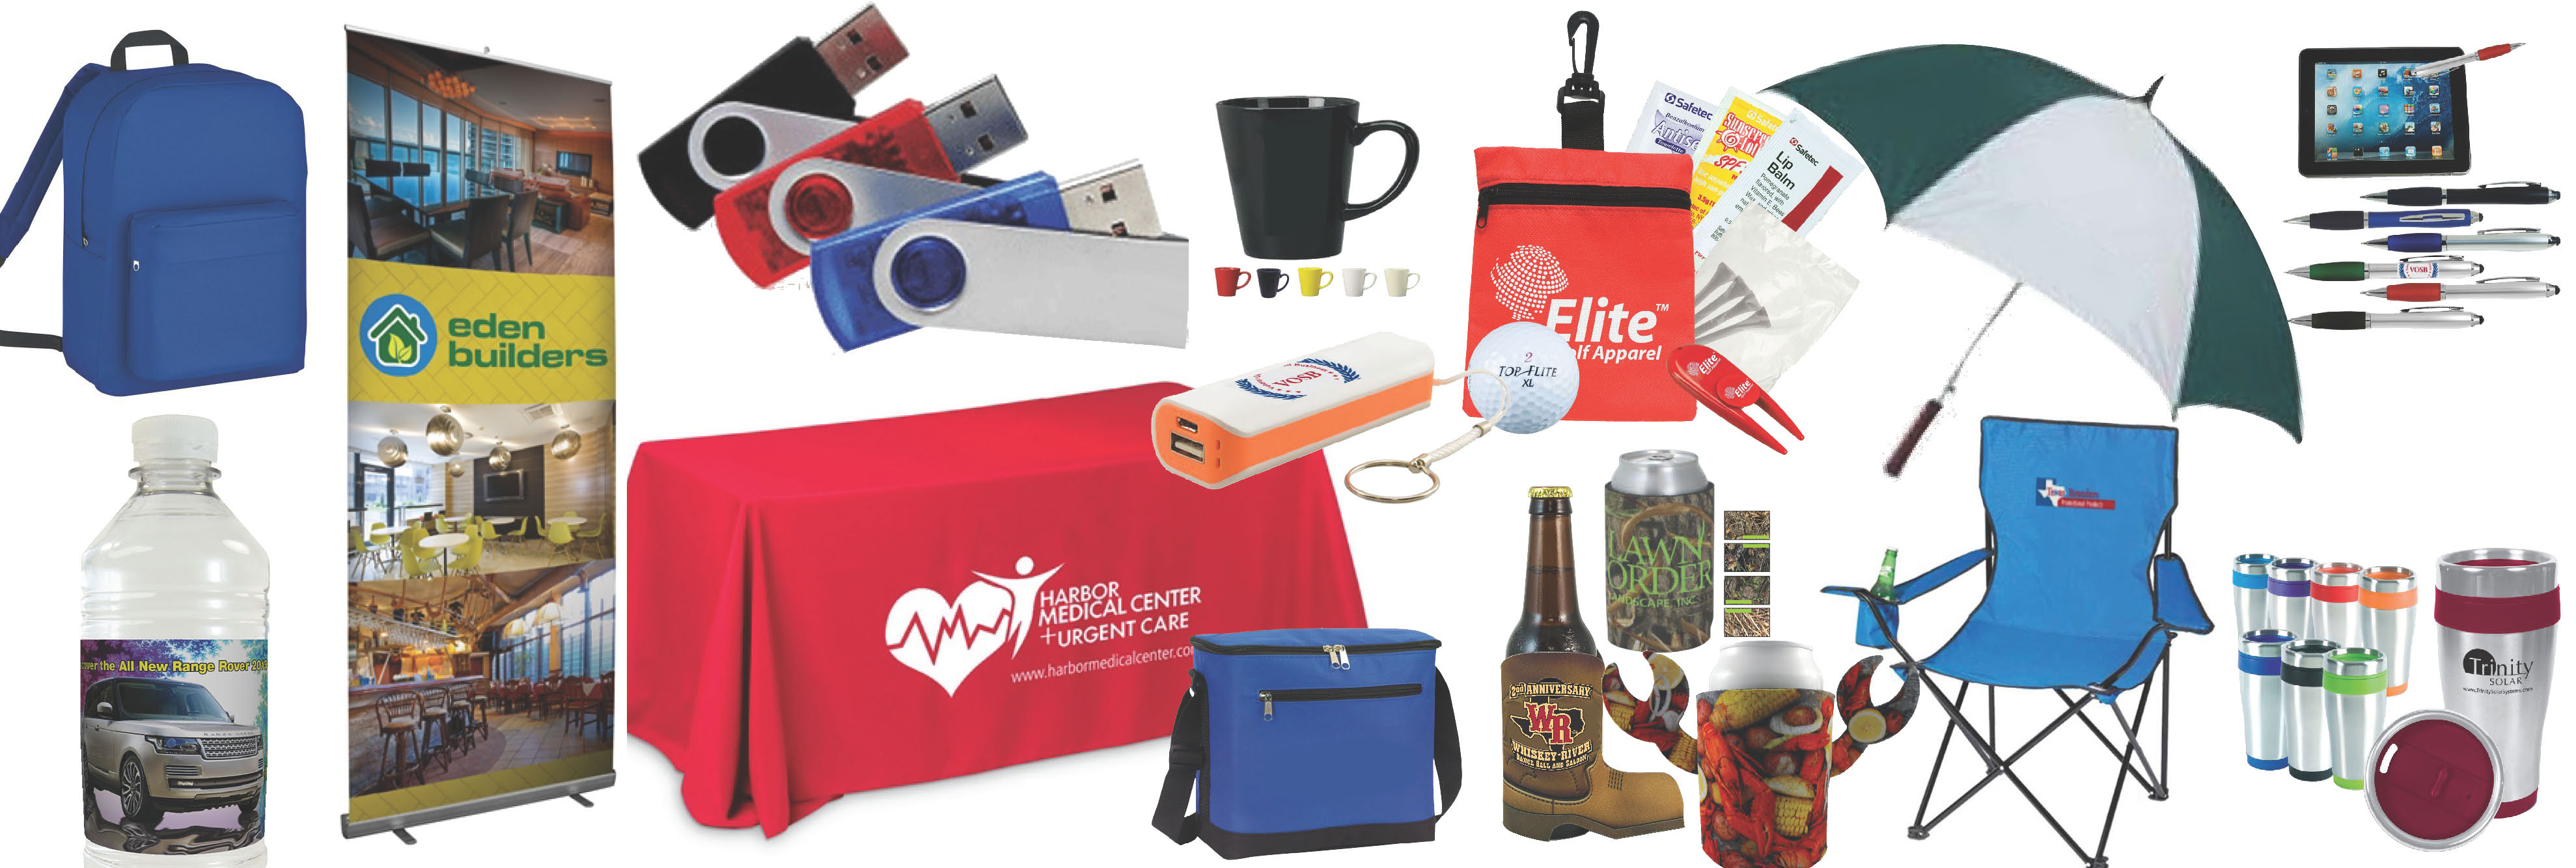 Promotional products banner for Texas Branders Promotional Products, Houston, TX